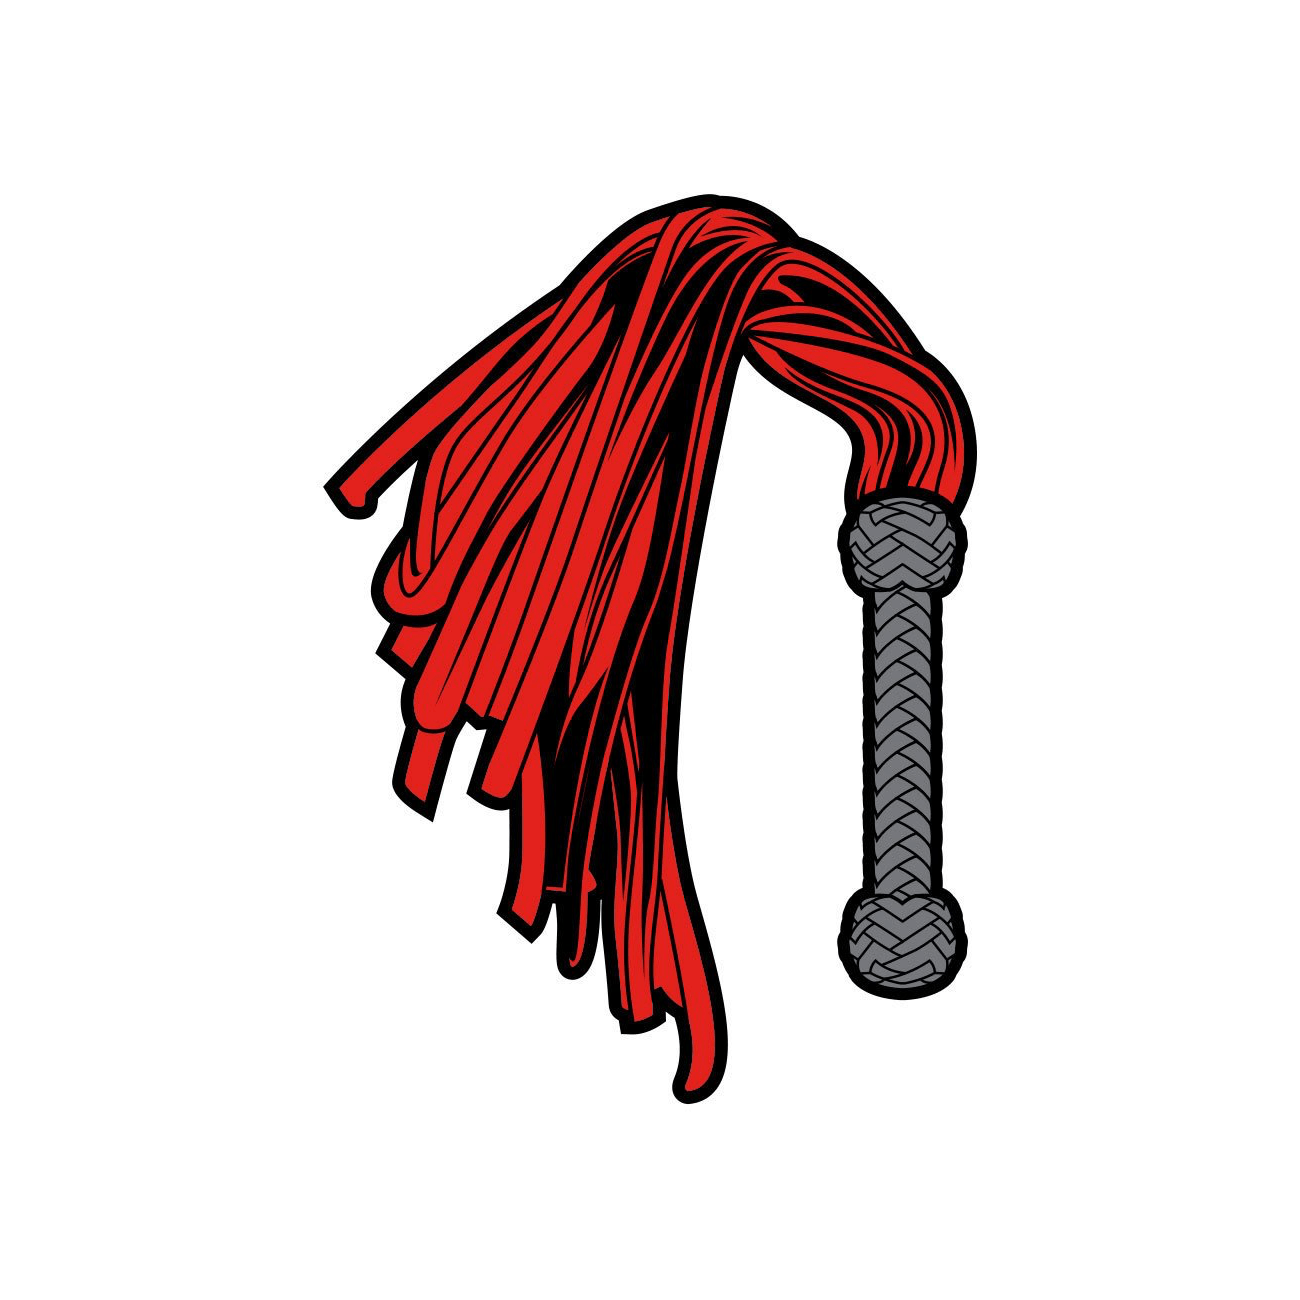 Flogger Enamel Pin by Wood Rocket - rolik